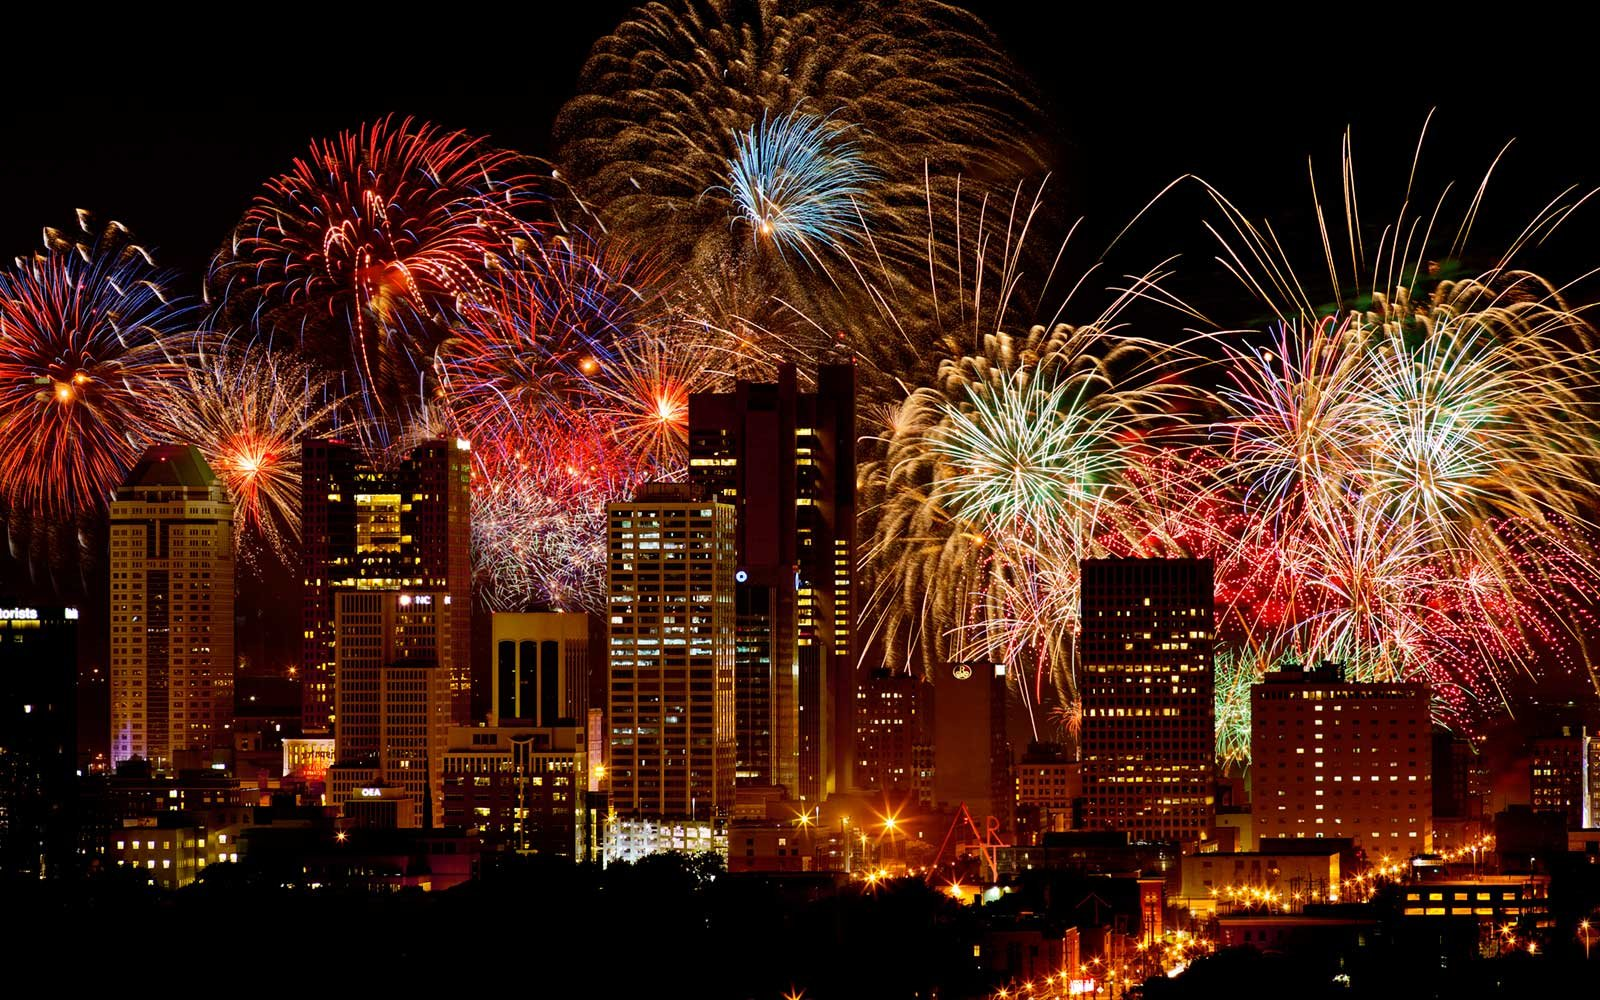 The Best Fourth of July Fireworks in Every U.S. State ... - photo#30